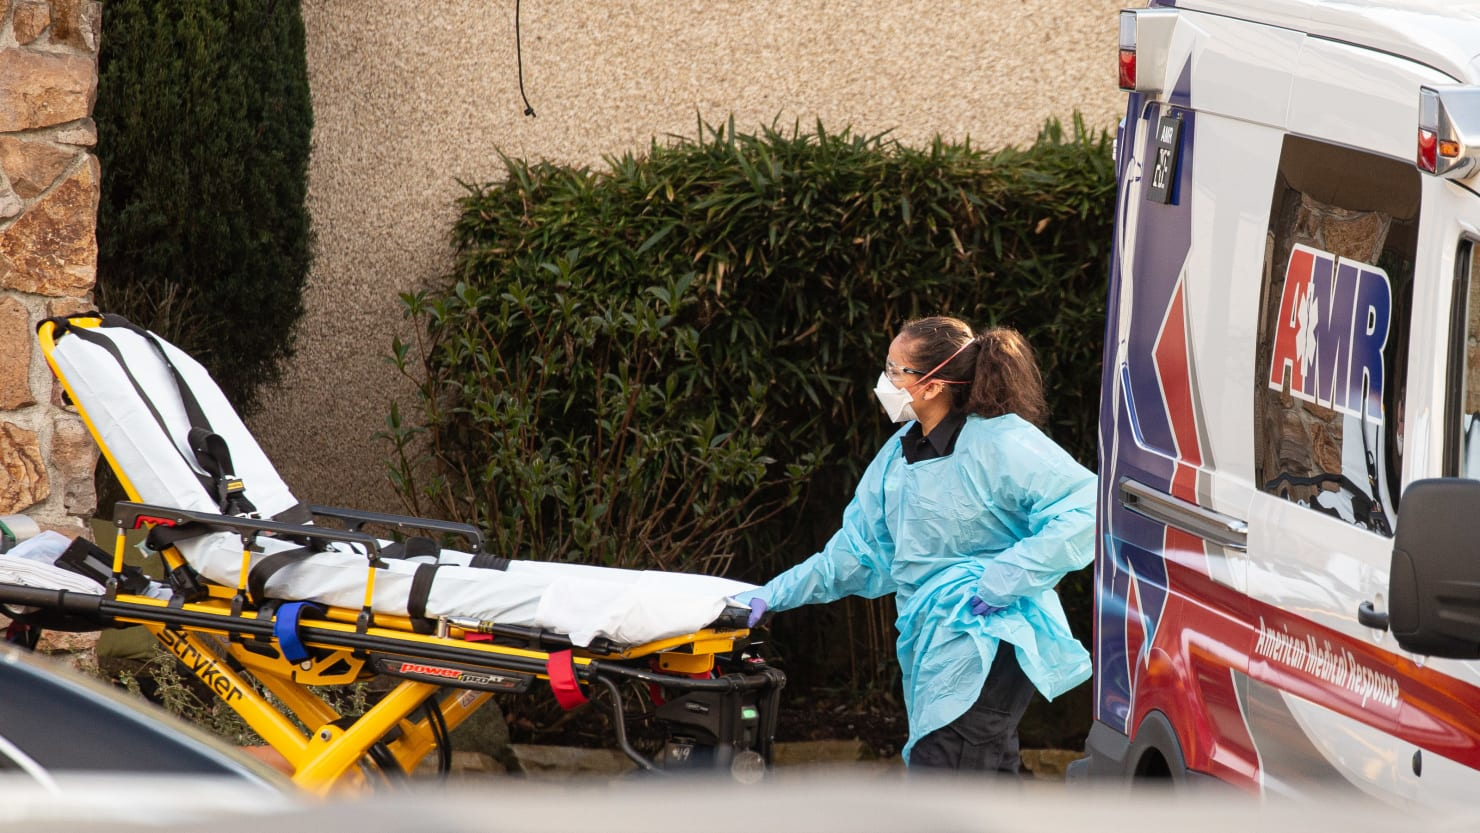 7 Senior Citizens Died of COVID-19 After Nursing Home Staffers Attended Wedding